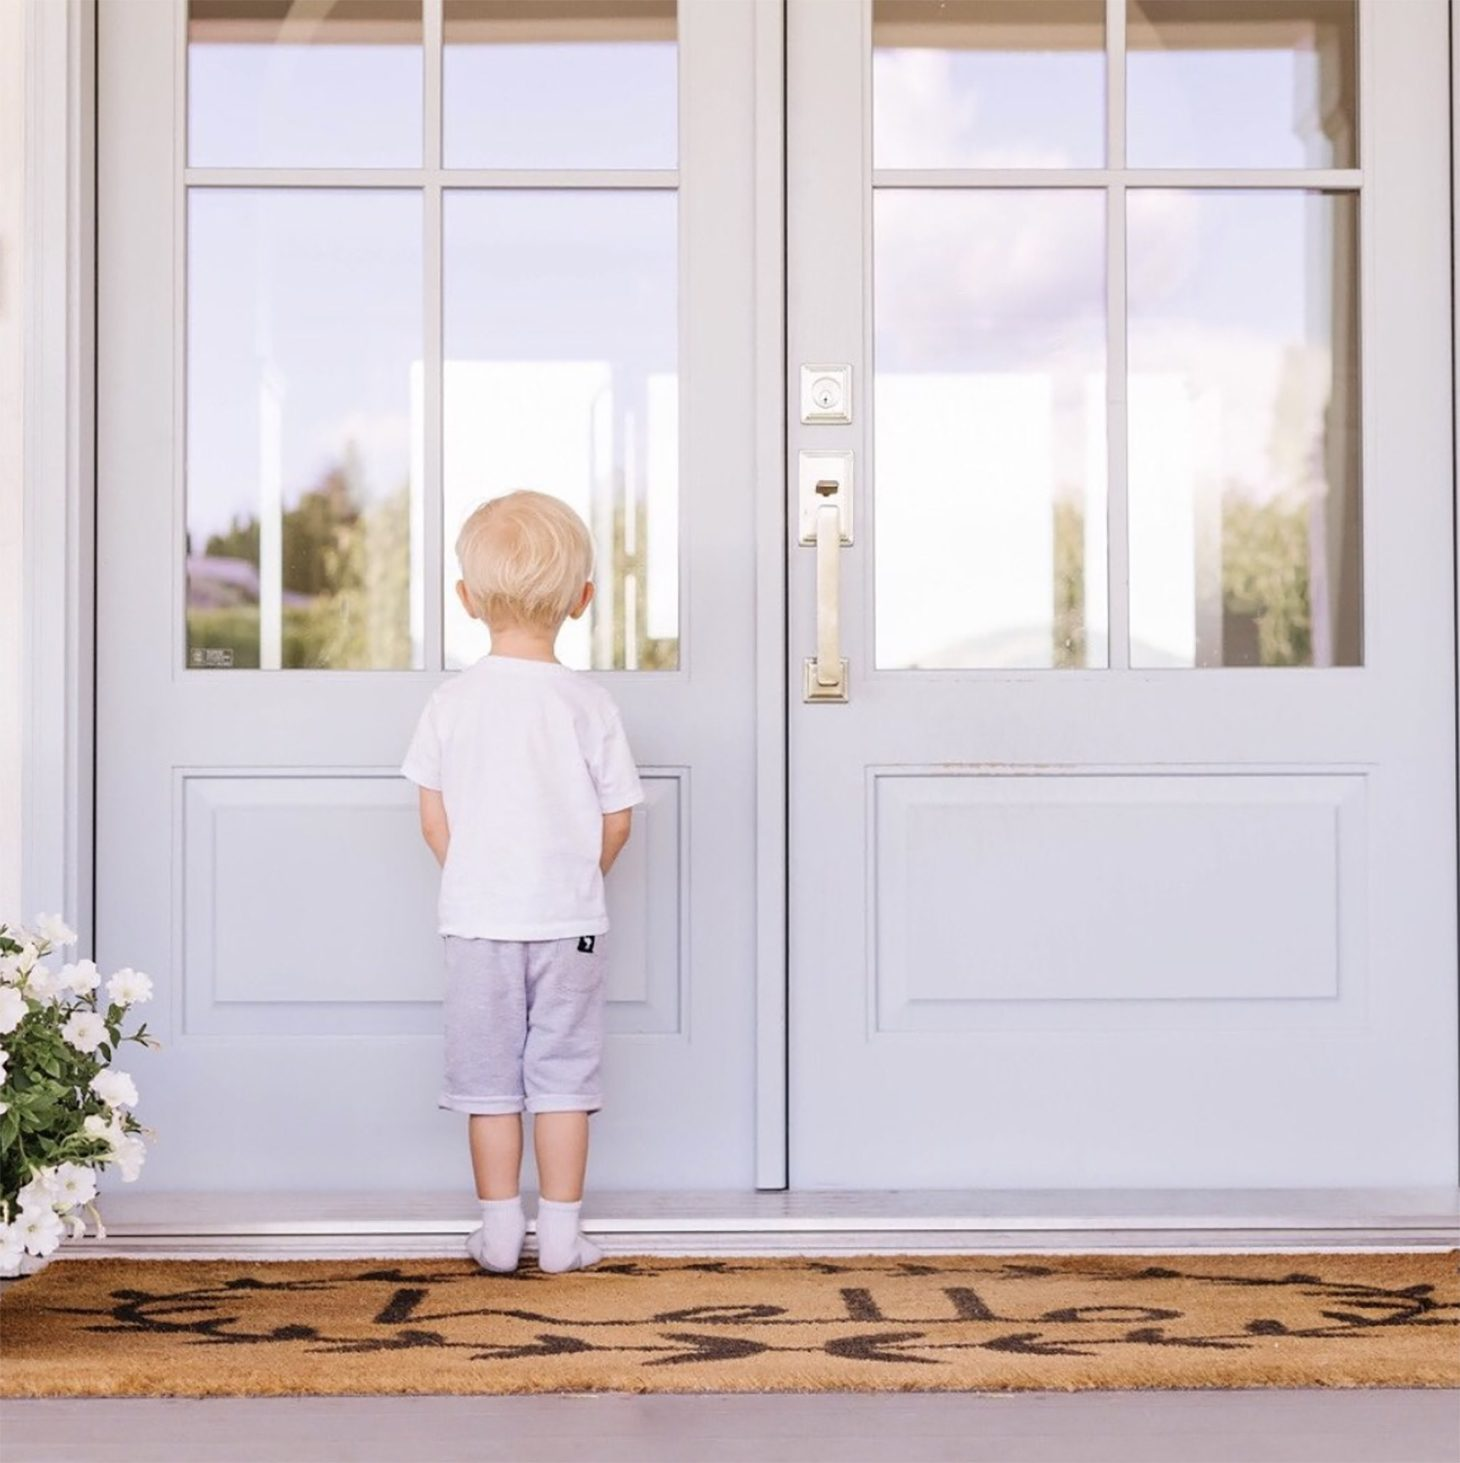 Leo Pasutto Waiting at the Front Door